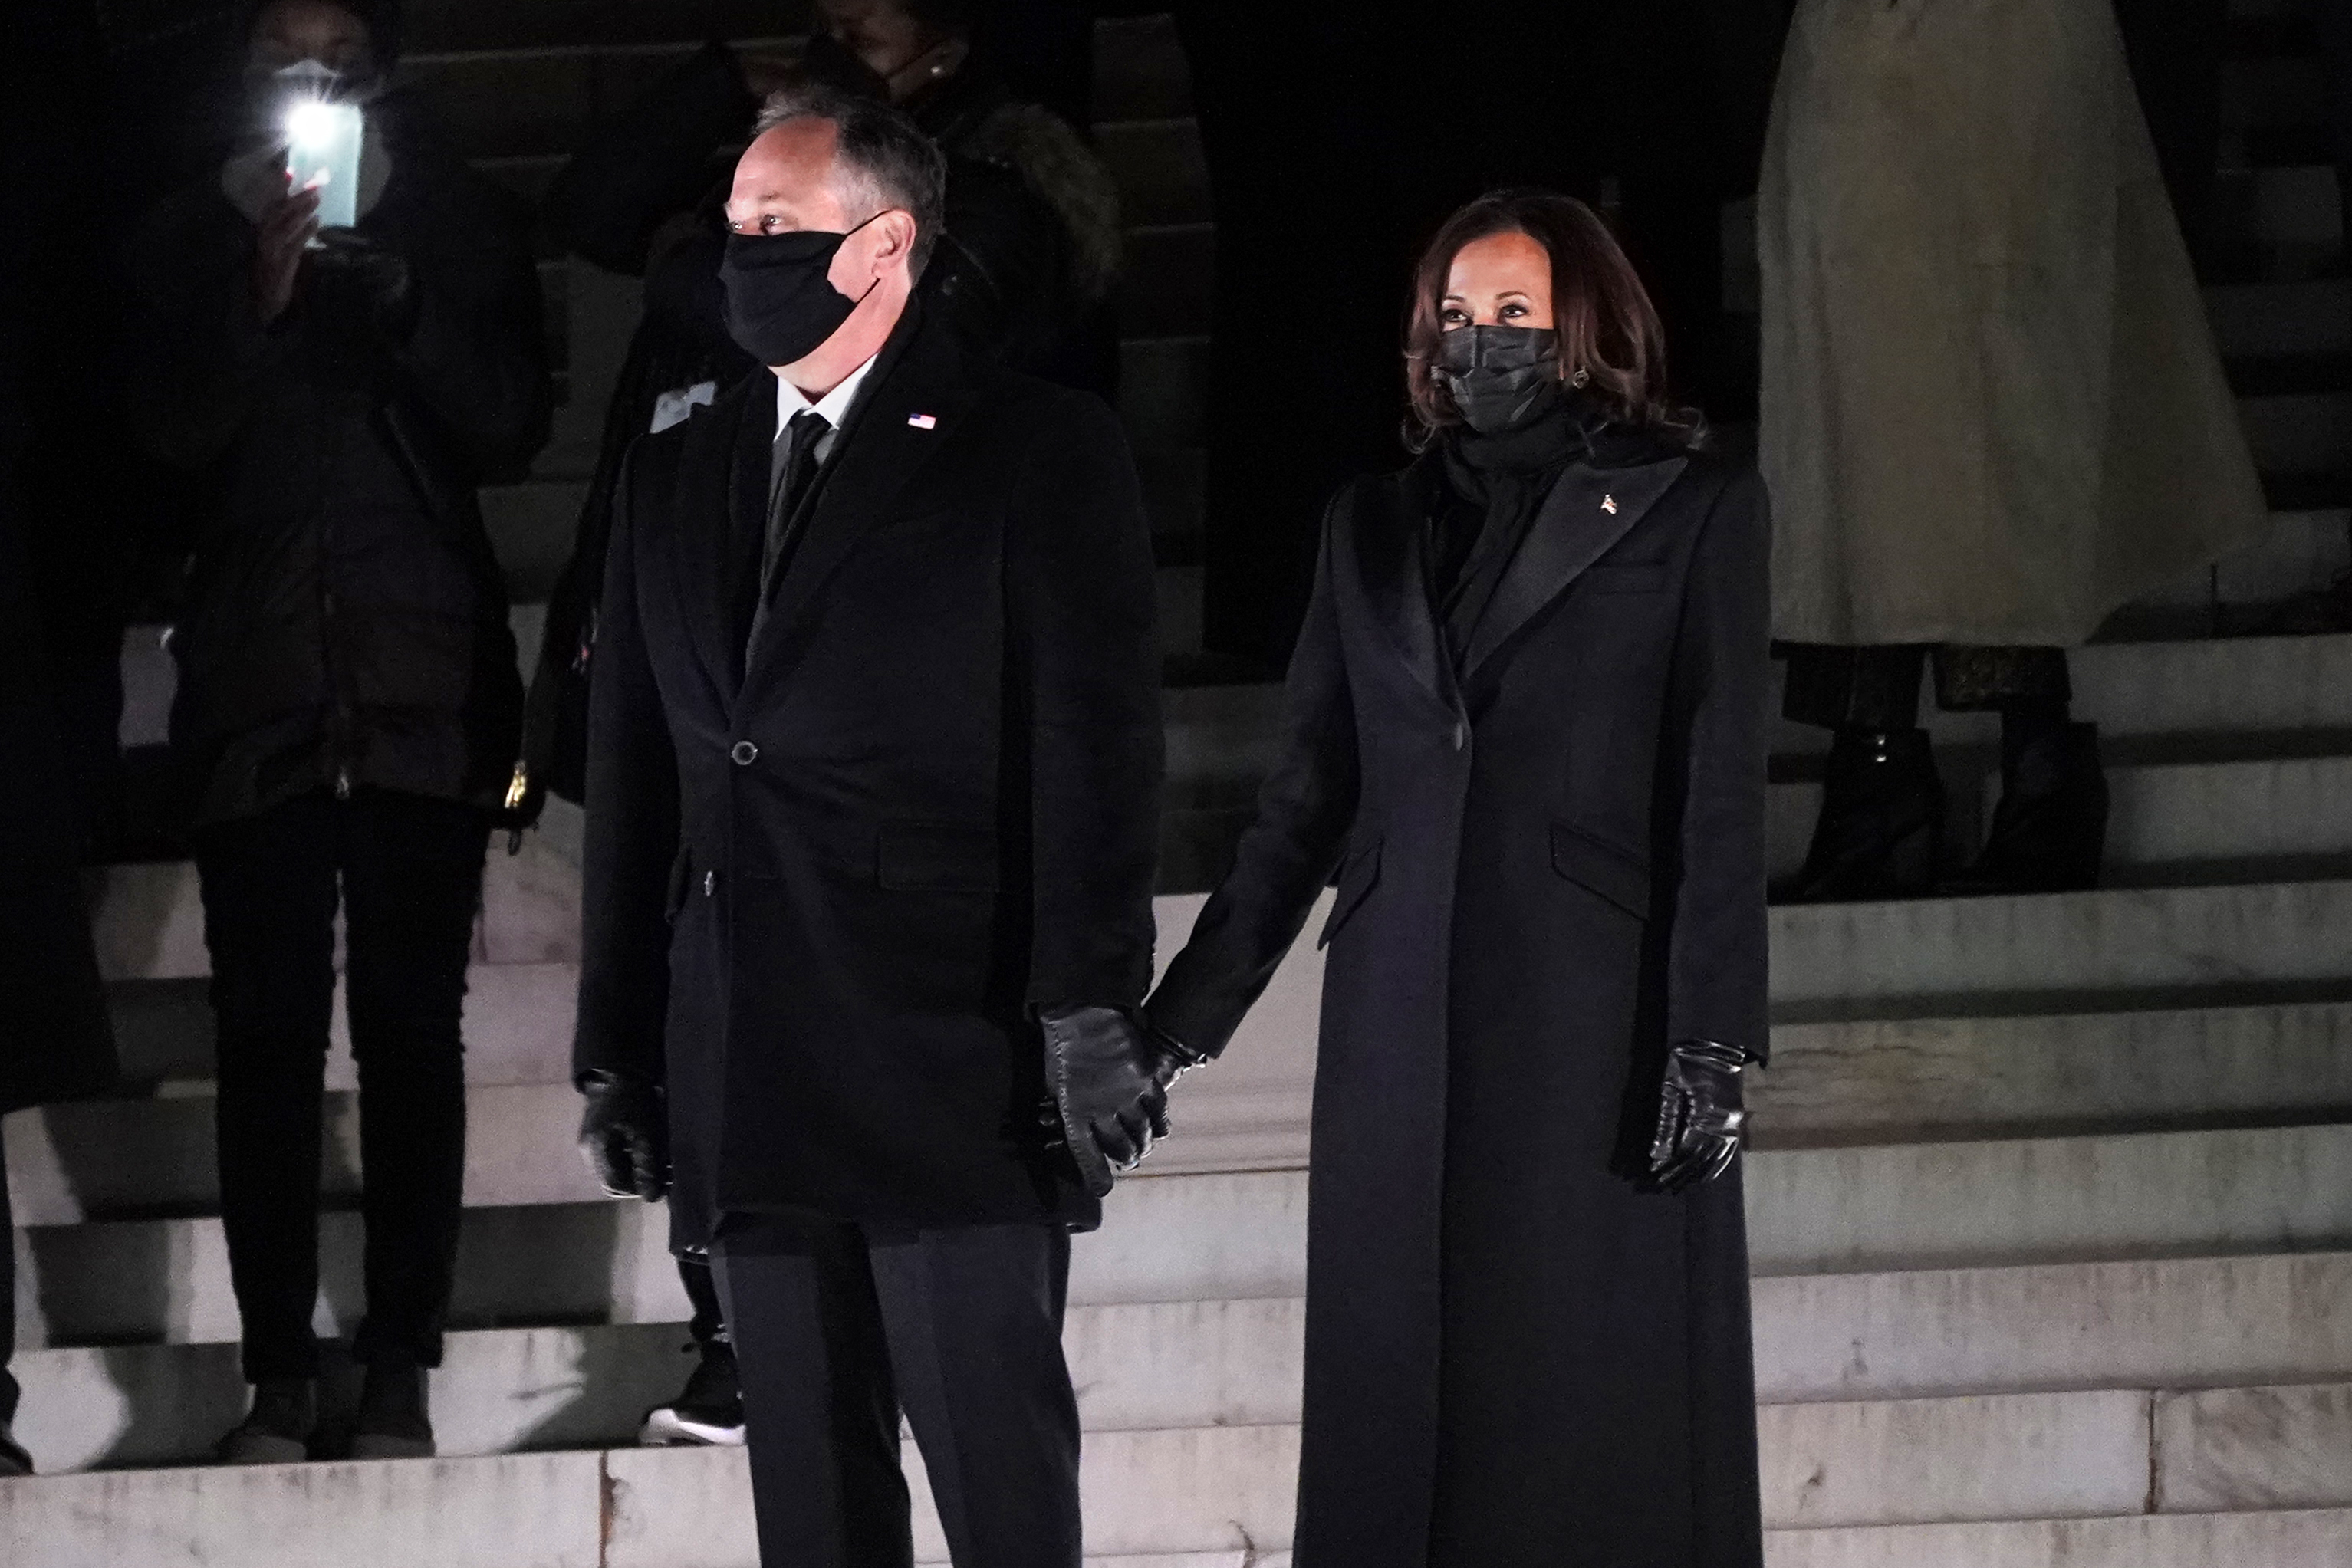 Vice President Kamala Harrisholds hands with her husband Doug Emhoff before watching fireworks at the Lincoln Memorial, Wednesday, Jan. 20, 2021, in Washington.(AP Photo/Jacquelyn Martin)